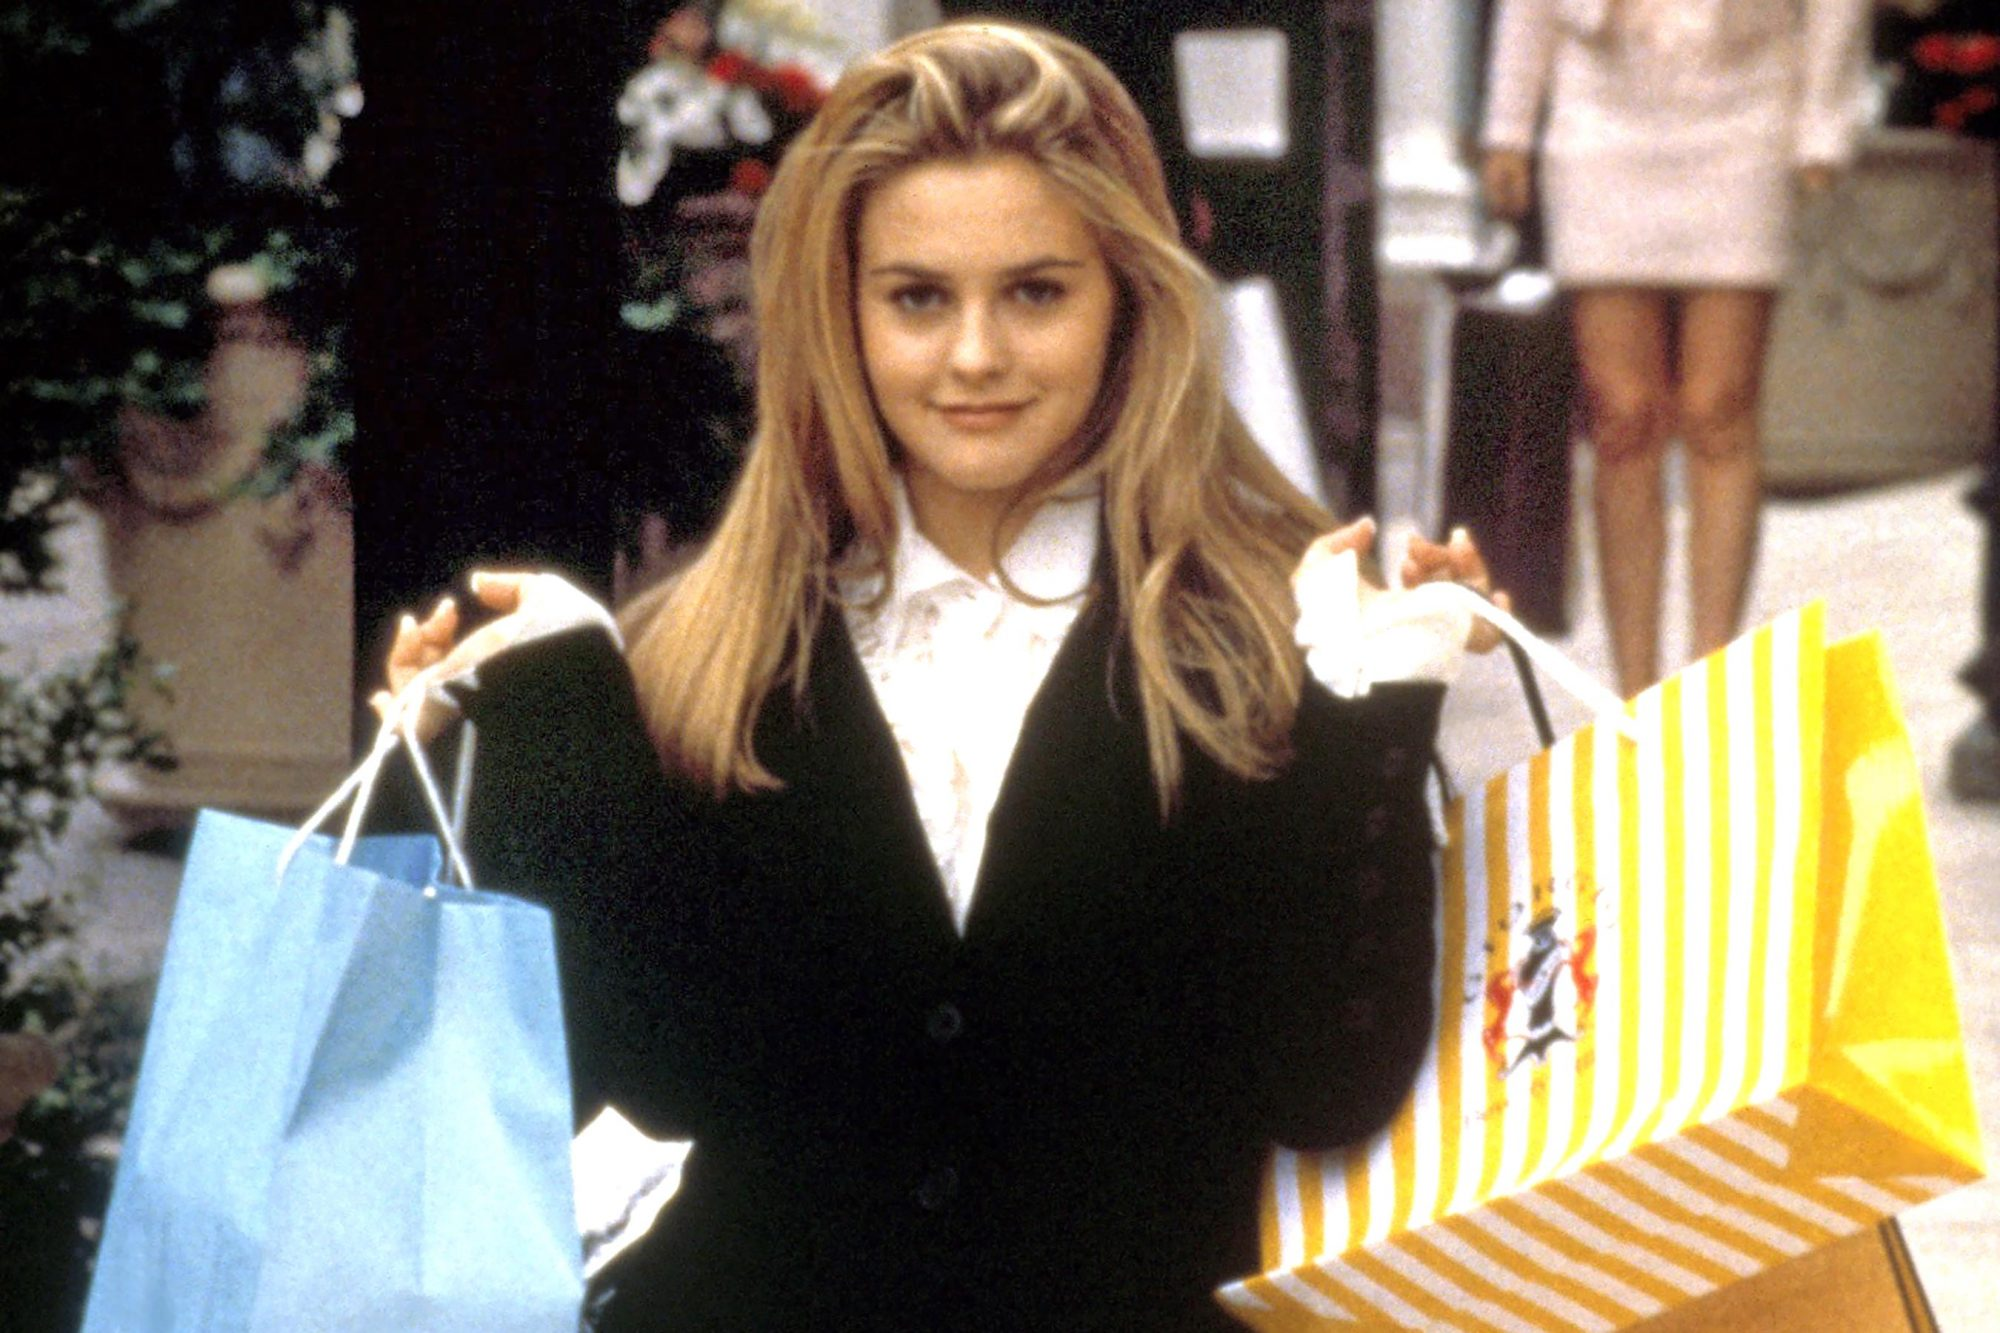 CLUELESS, Alicia Silverstone, 1995, (c) Paramount/courtesy Everett Collection